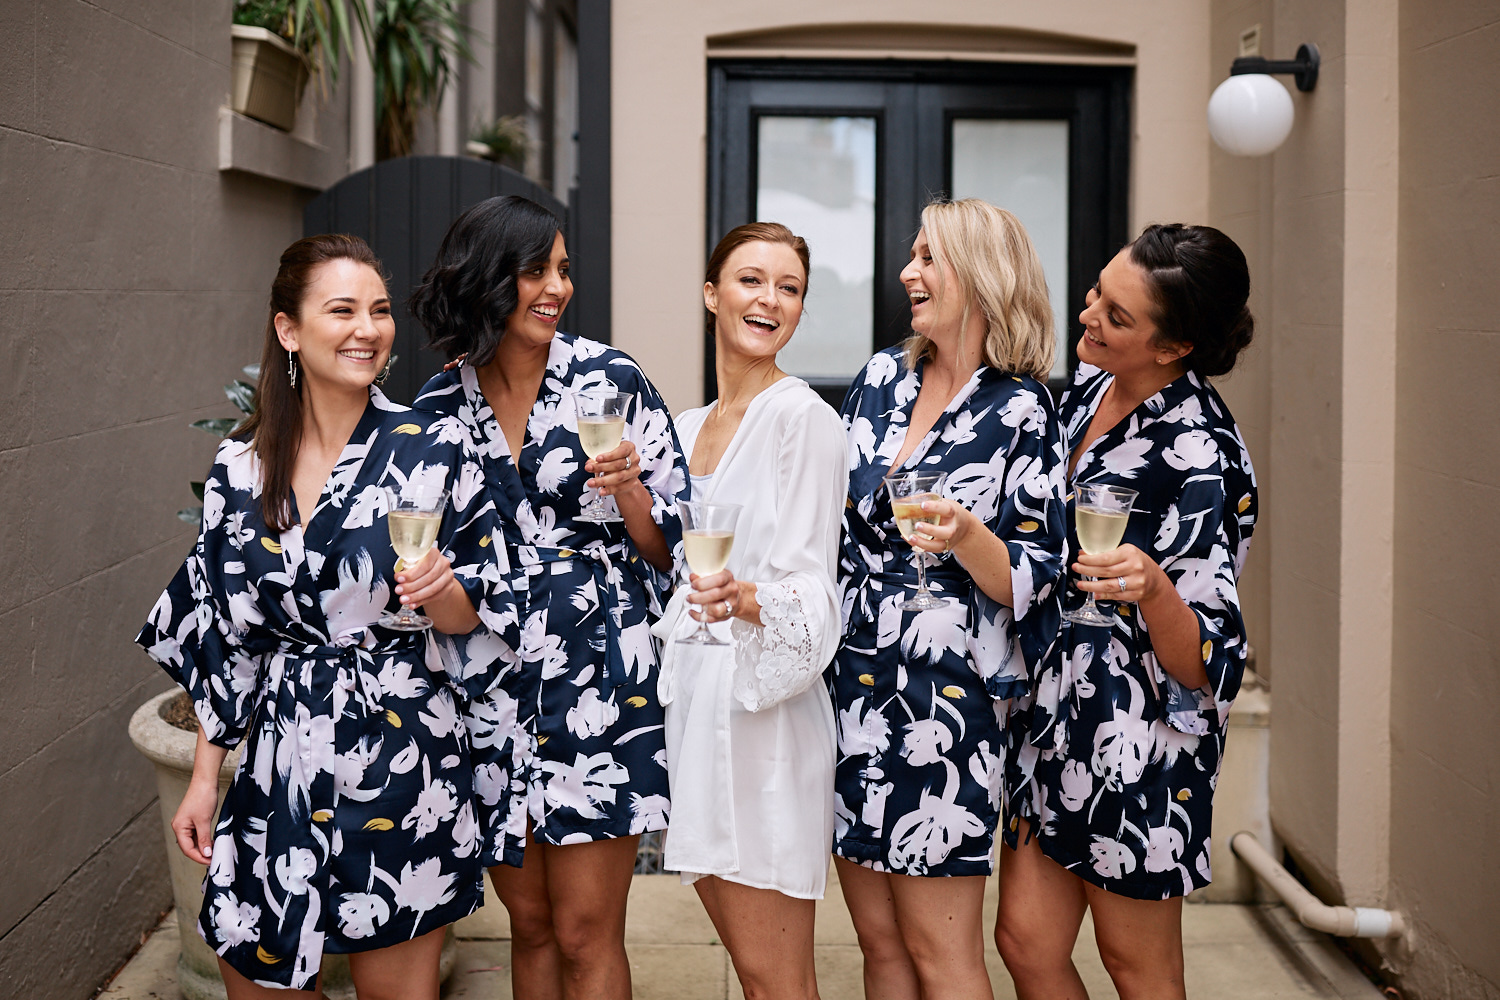 Bridesmaids wearing robes and holding champagne laughing